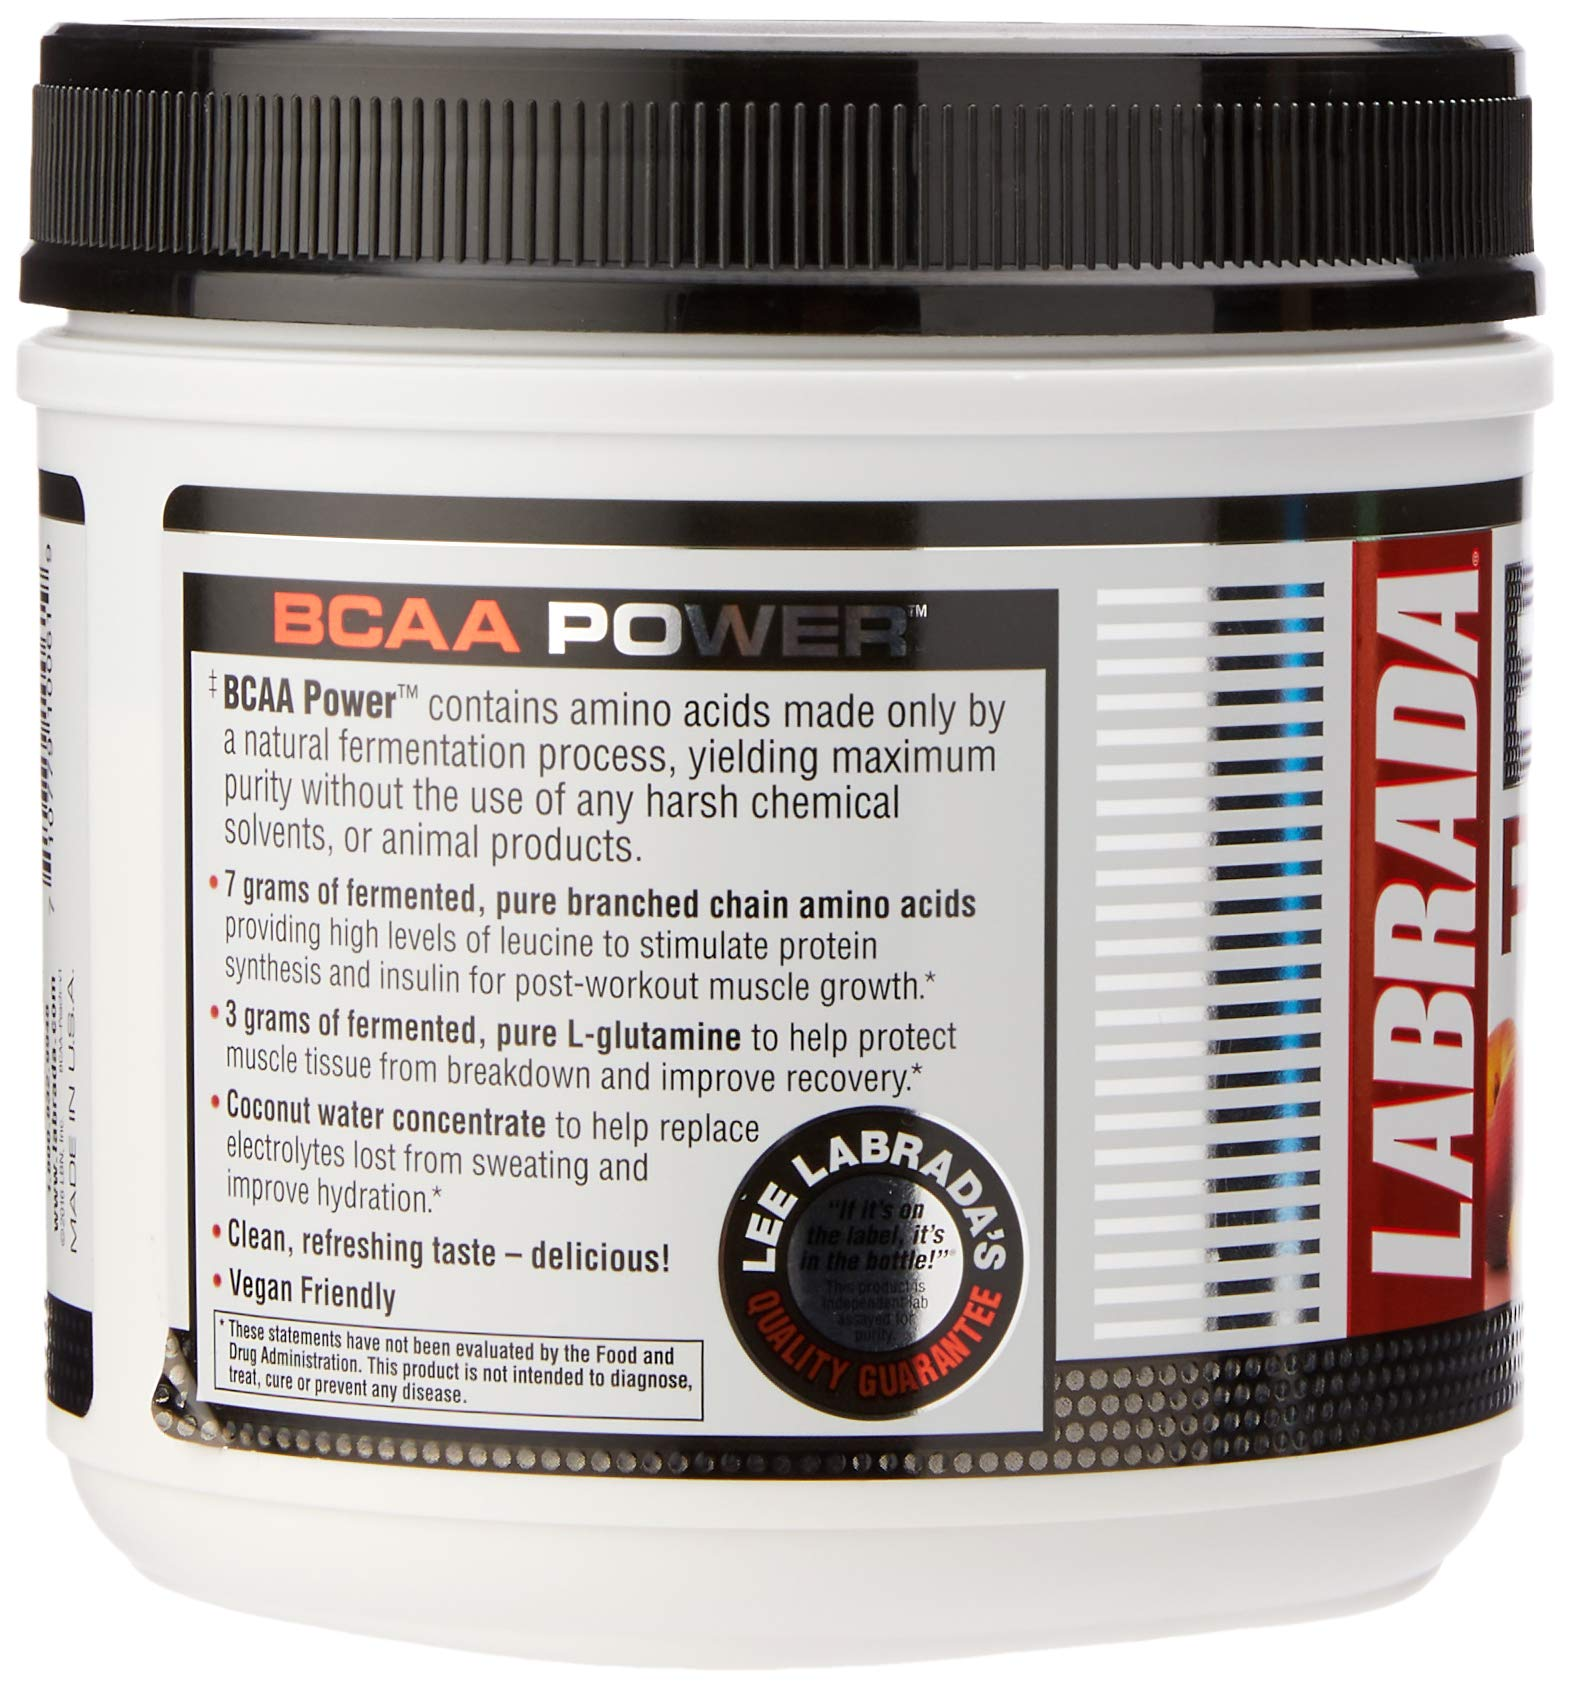 Labrada Nutrition BCAA Power Post Workout Supplement, Cherry Limeade, 417 Gram by Labrada (Image #4)